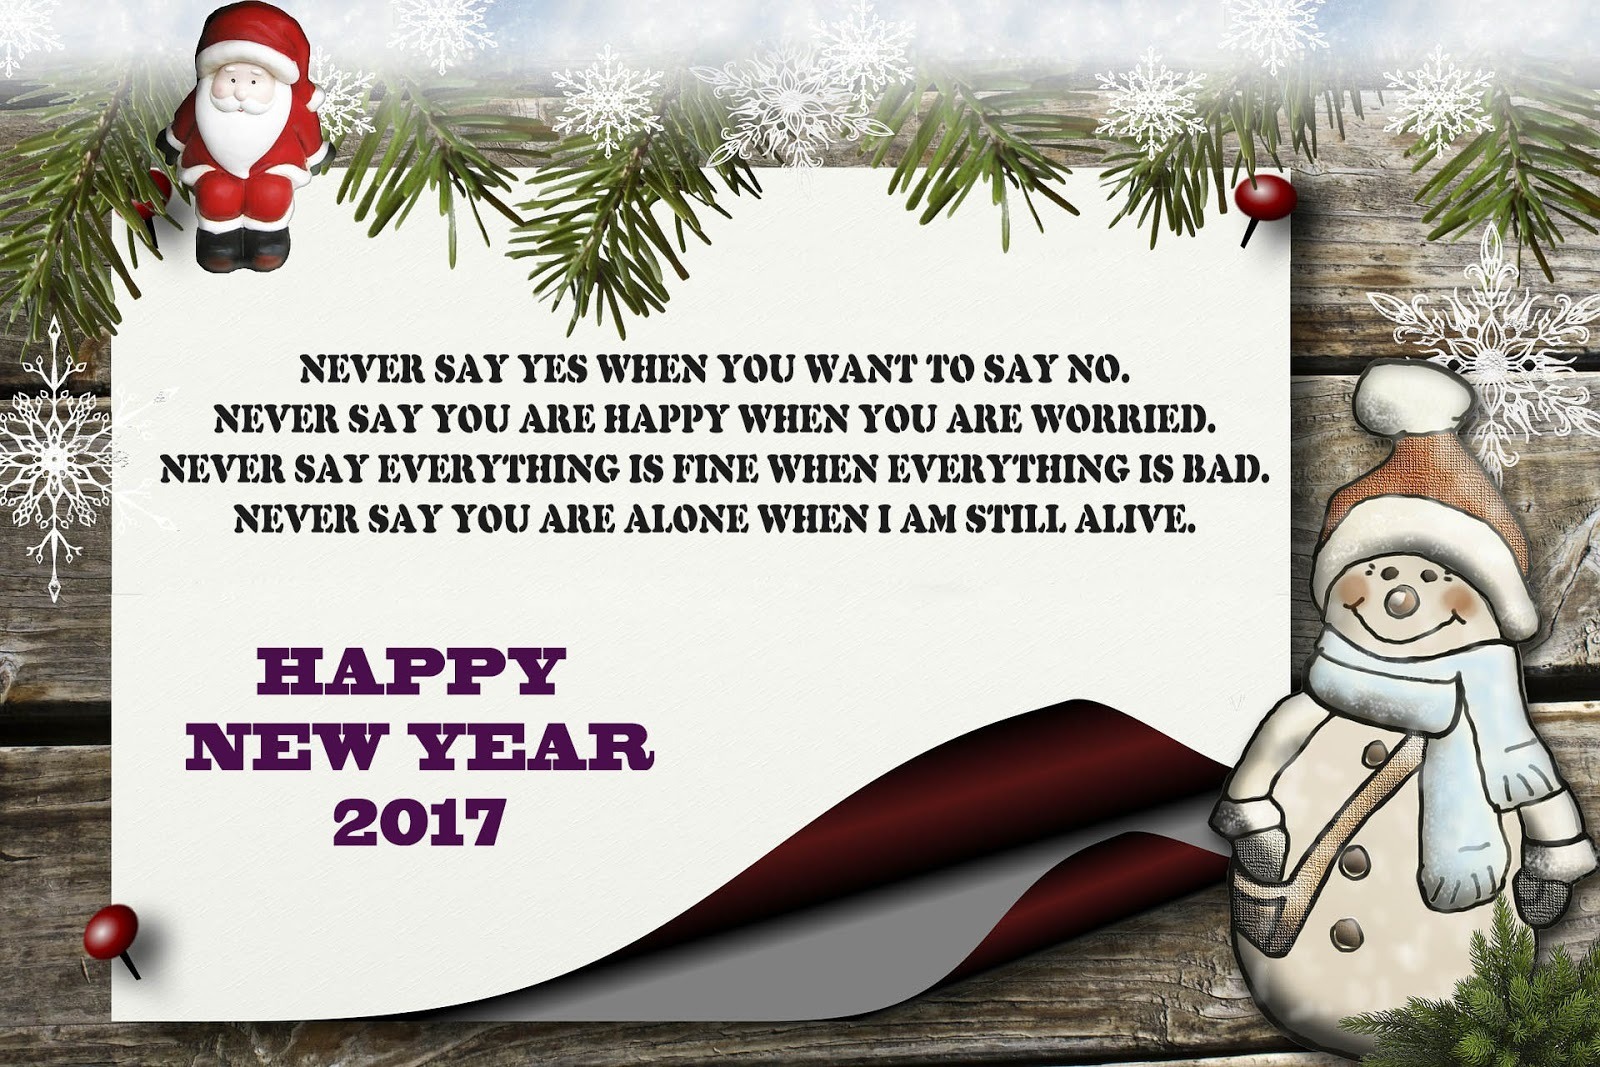 Happy New Year Wishes for Lover 2017 | Love Makes New Year Beautiful ...